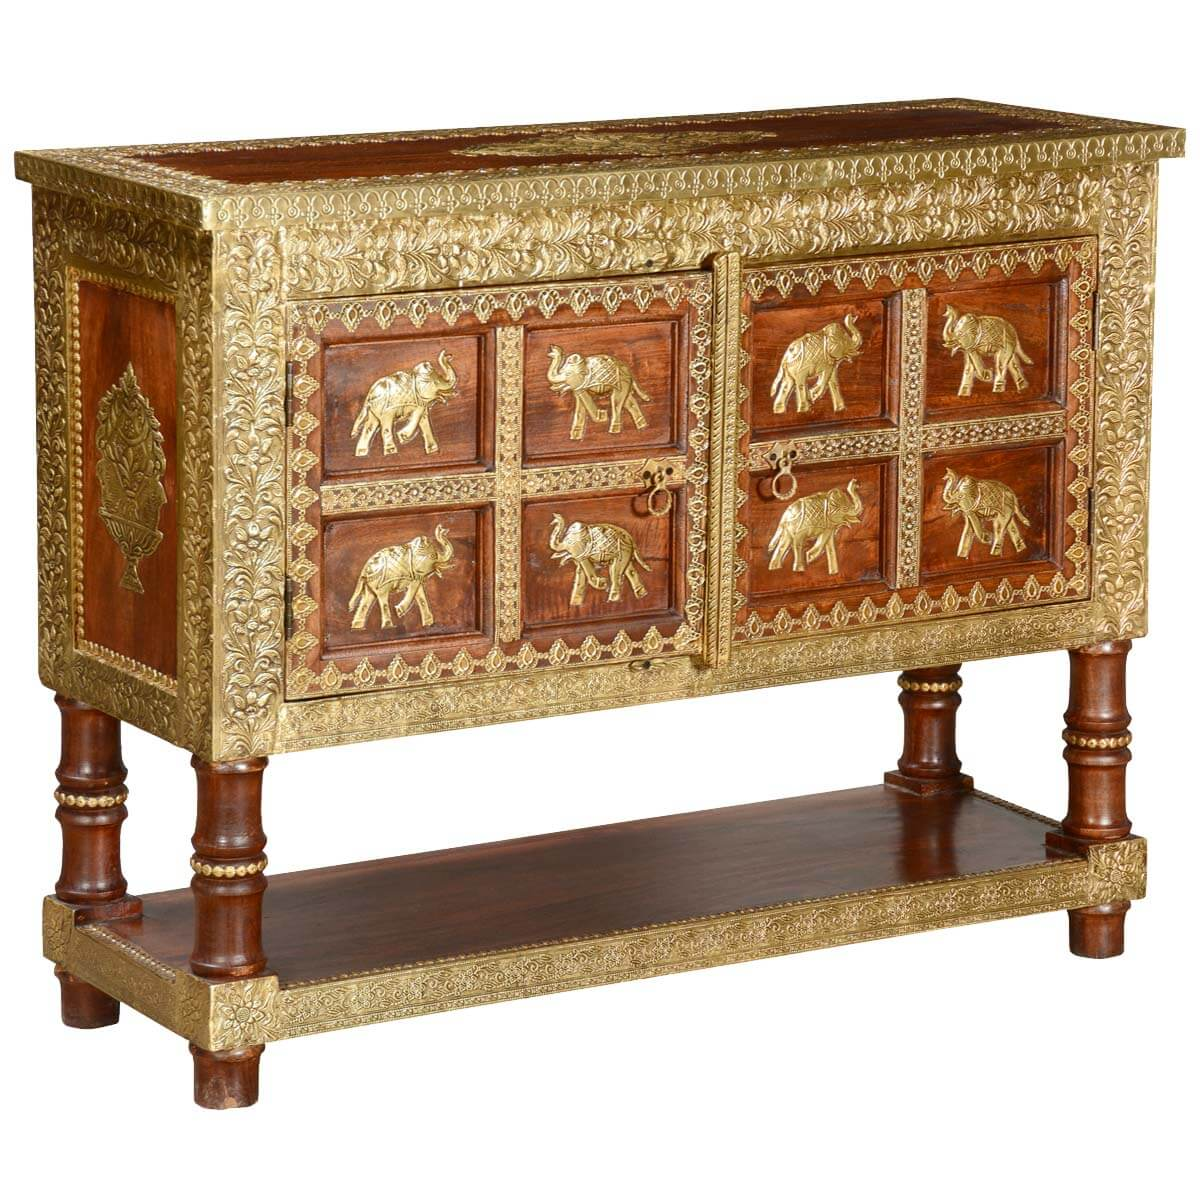 8 Golden Elephants Mango Wood Brass Inlay Console Table Chest